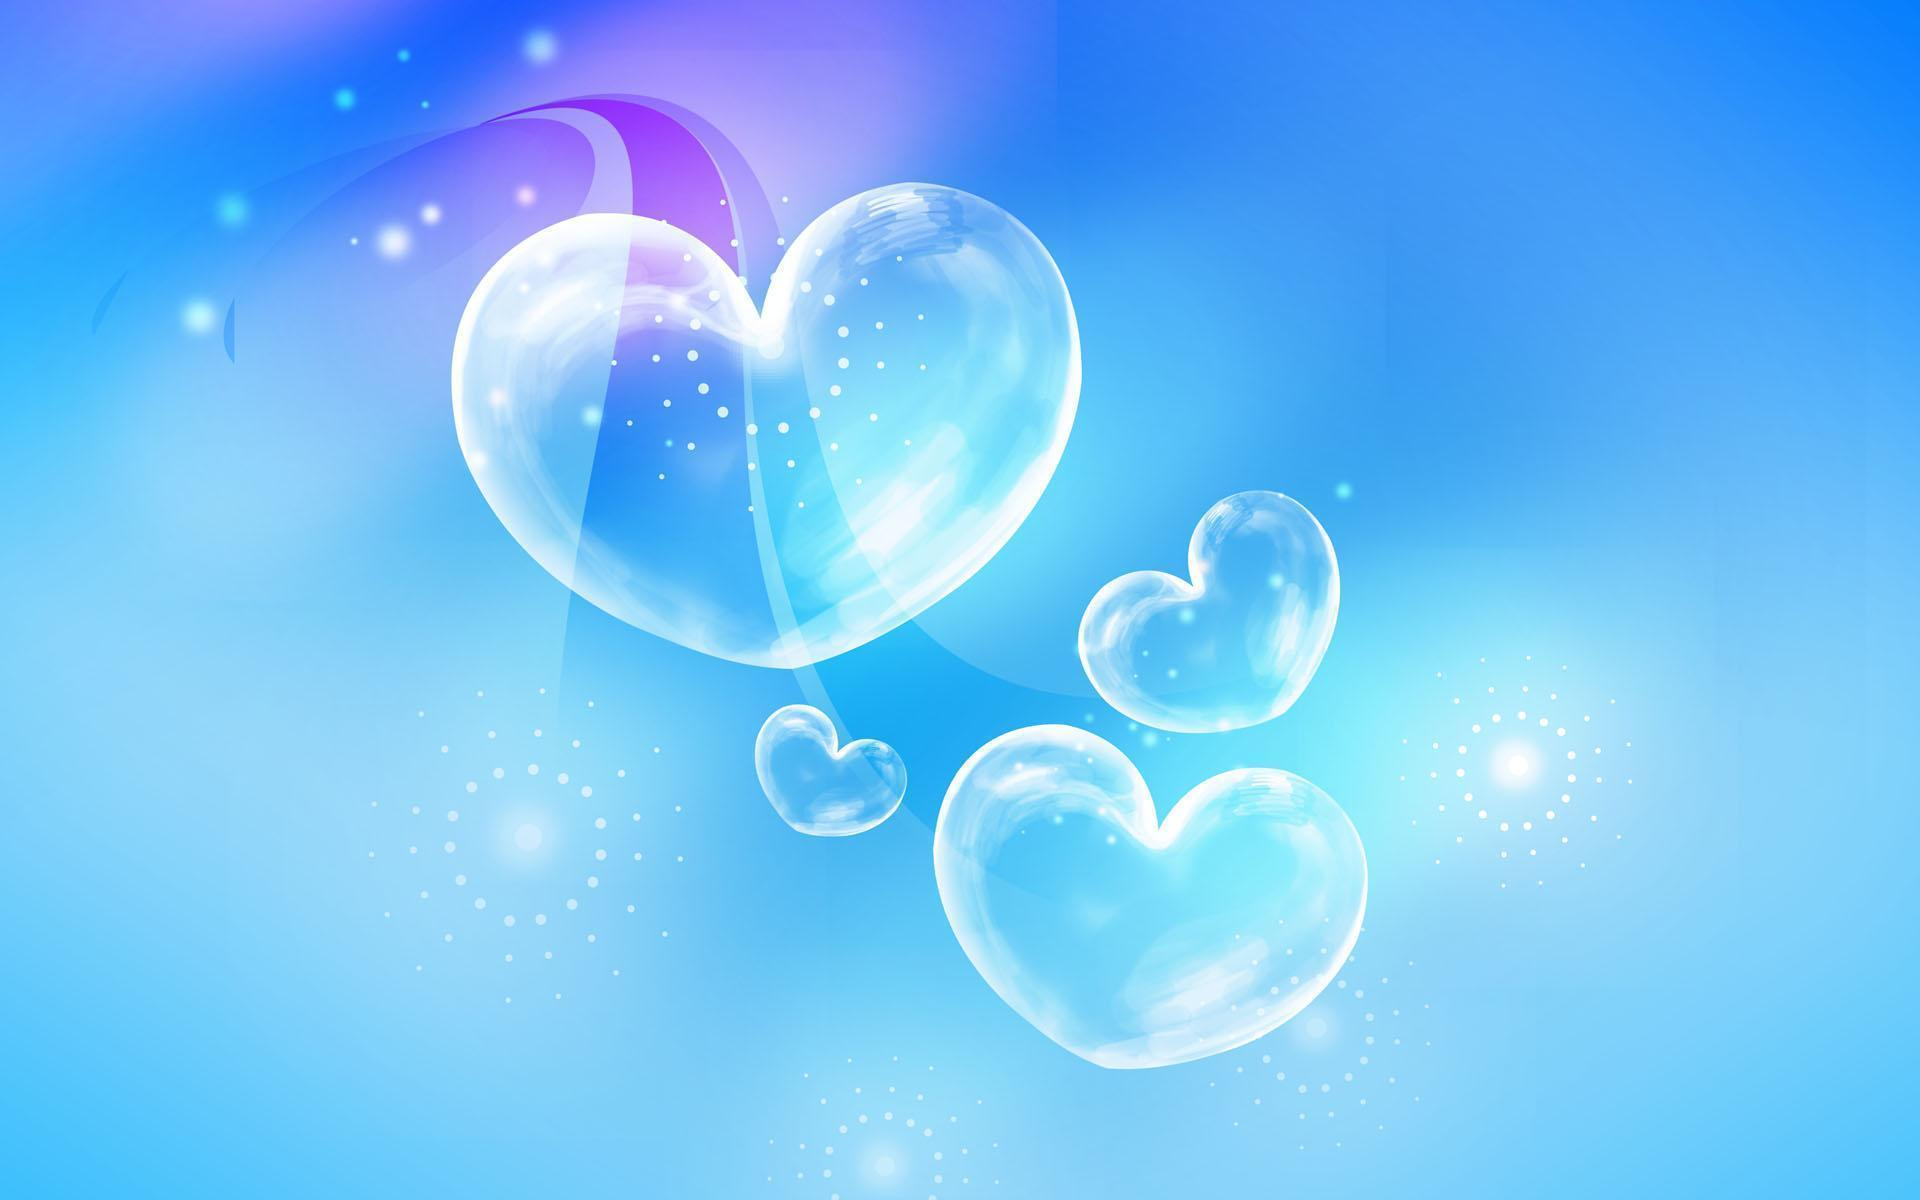 wallpaper rain blue hearts - photo #22